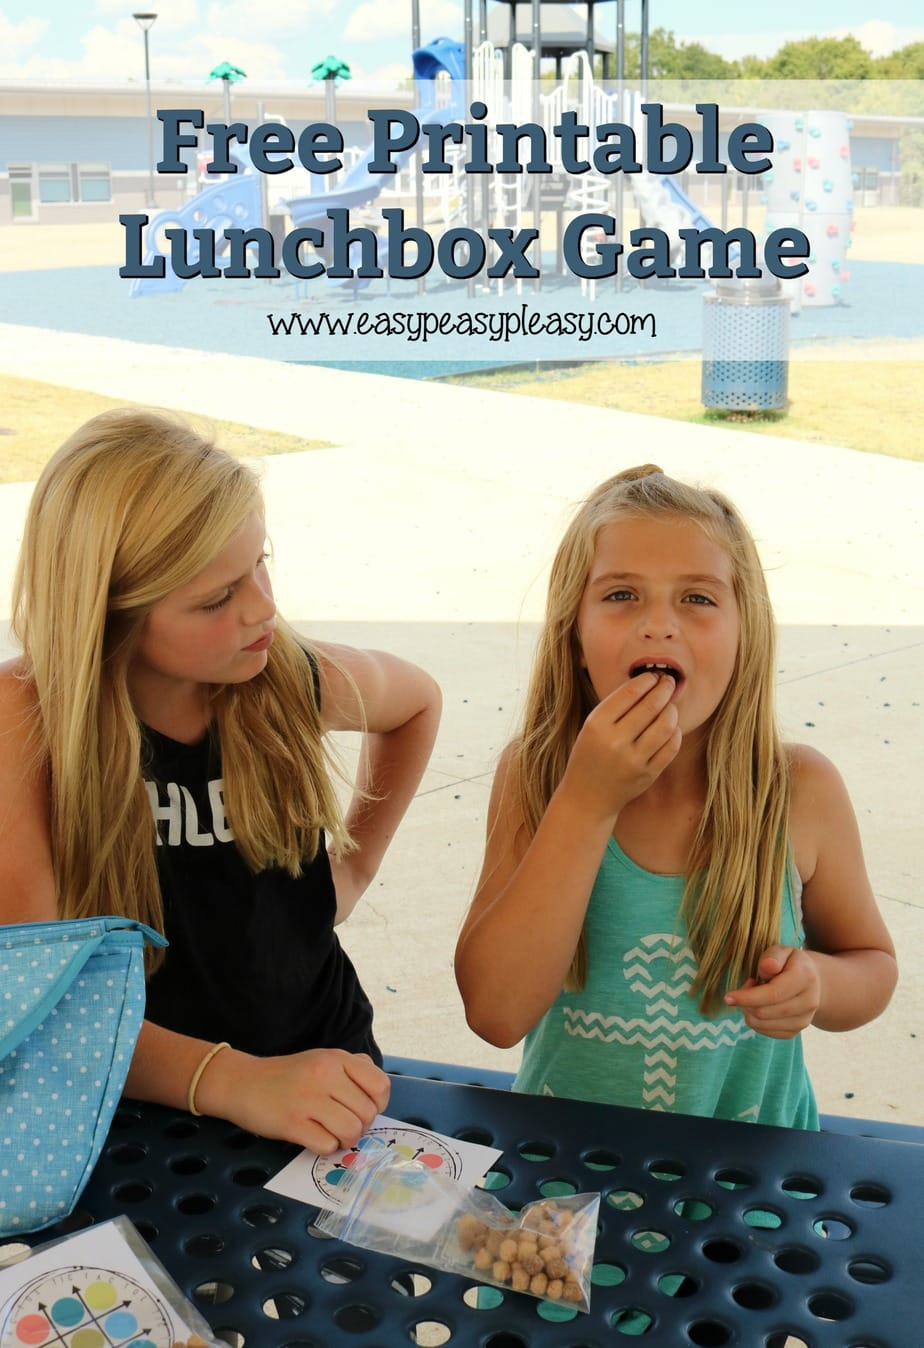 Free Printable Lunchbox game using cereal. No pens, pencils, or crayons needed.